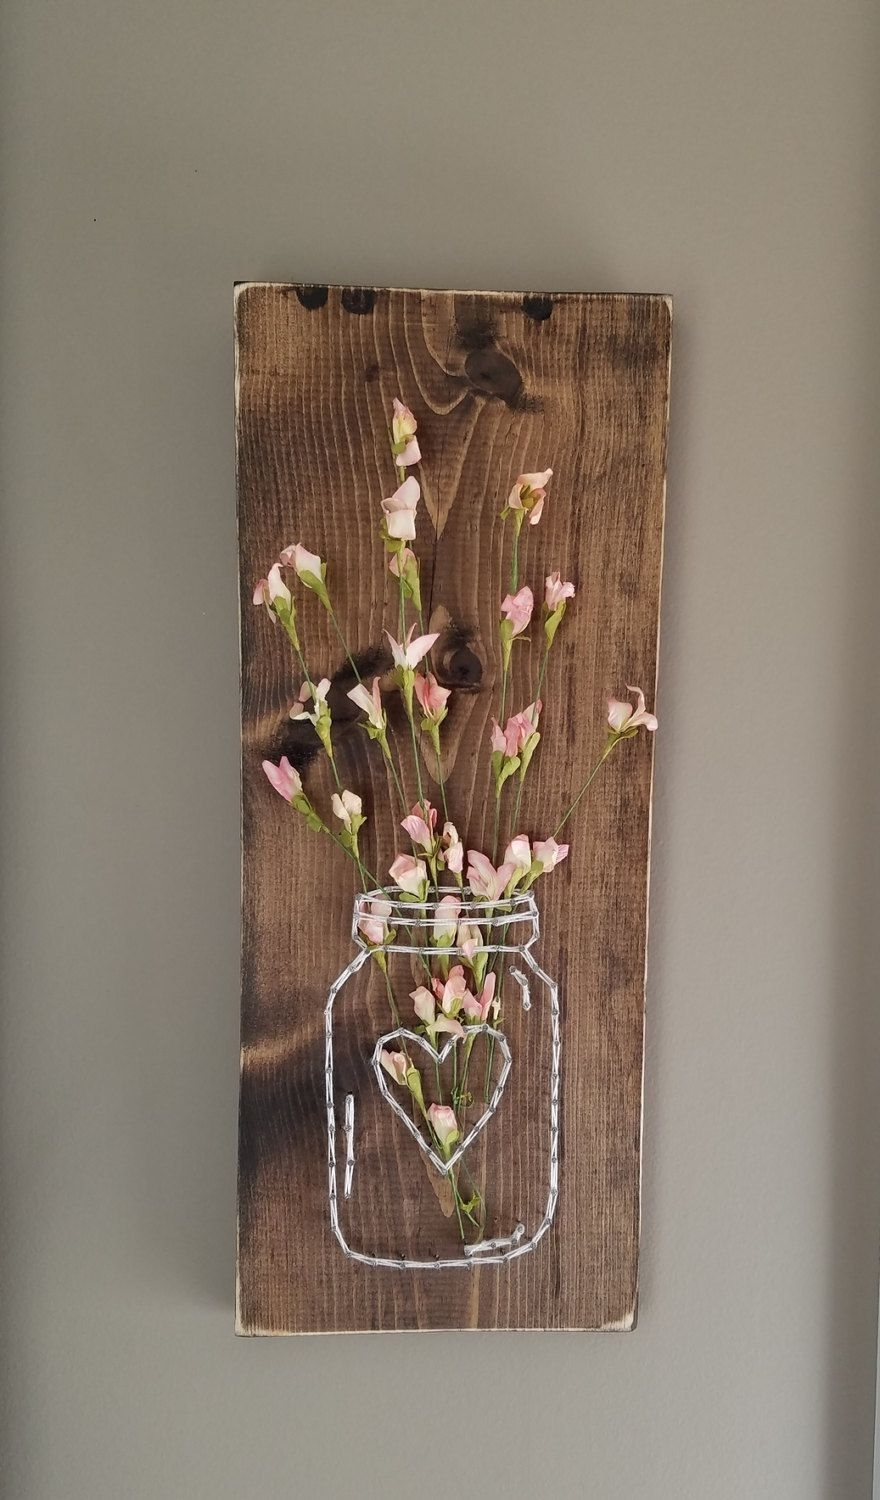 Mason Jar String Art With Artificial Flowers, Wall Art, Wood Wall With Most Up To Date Mason Jar Wall Art (View 9 of 20)